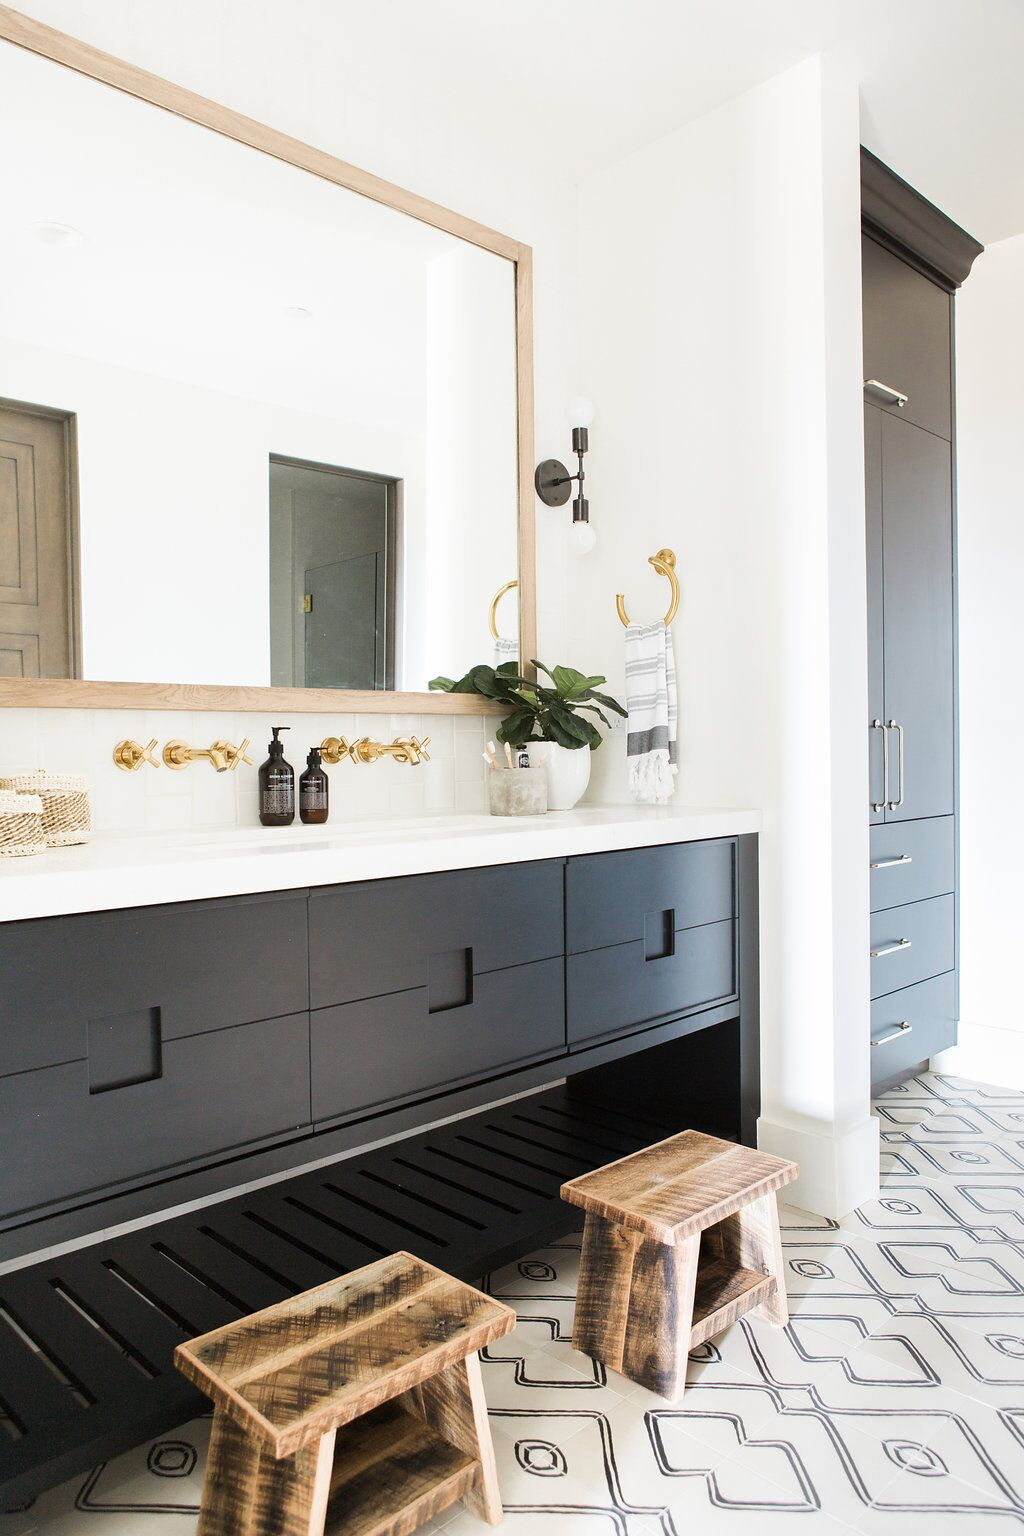 Bathroom+with+patterned+tile,+white+countertops+and+gold+hardware.jpg